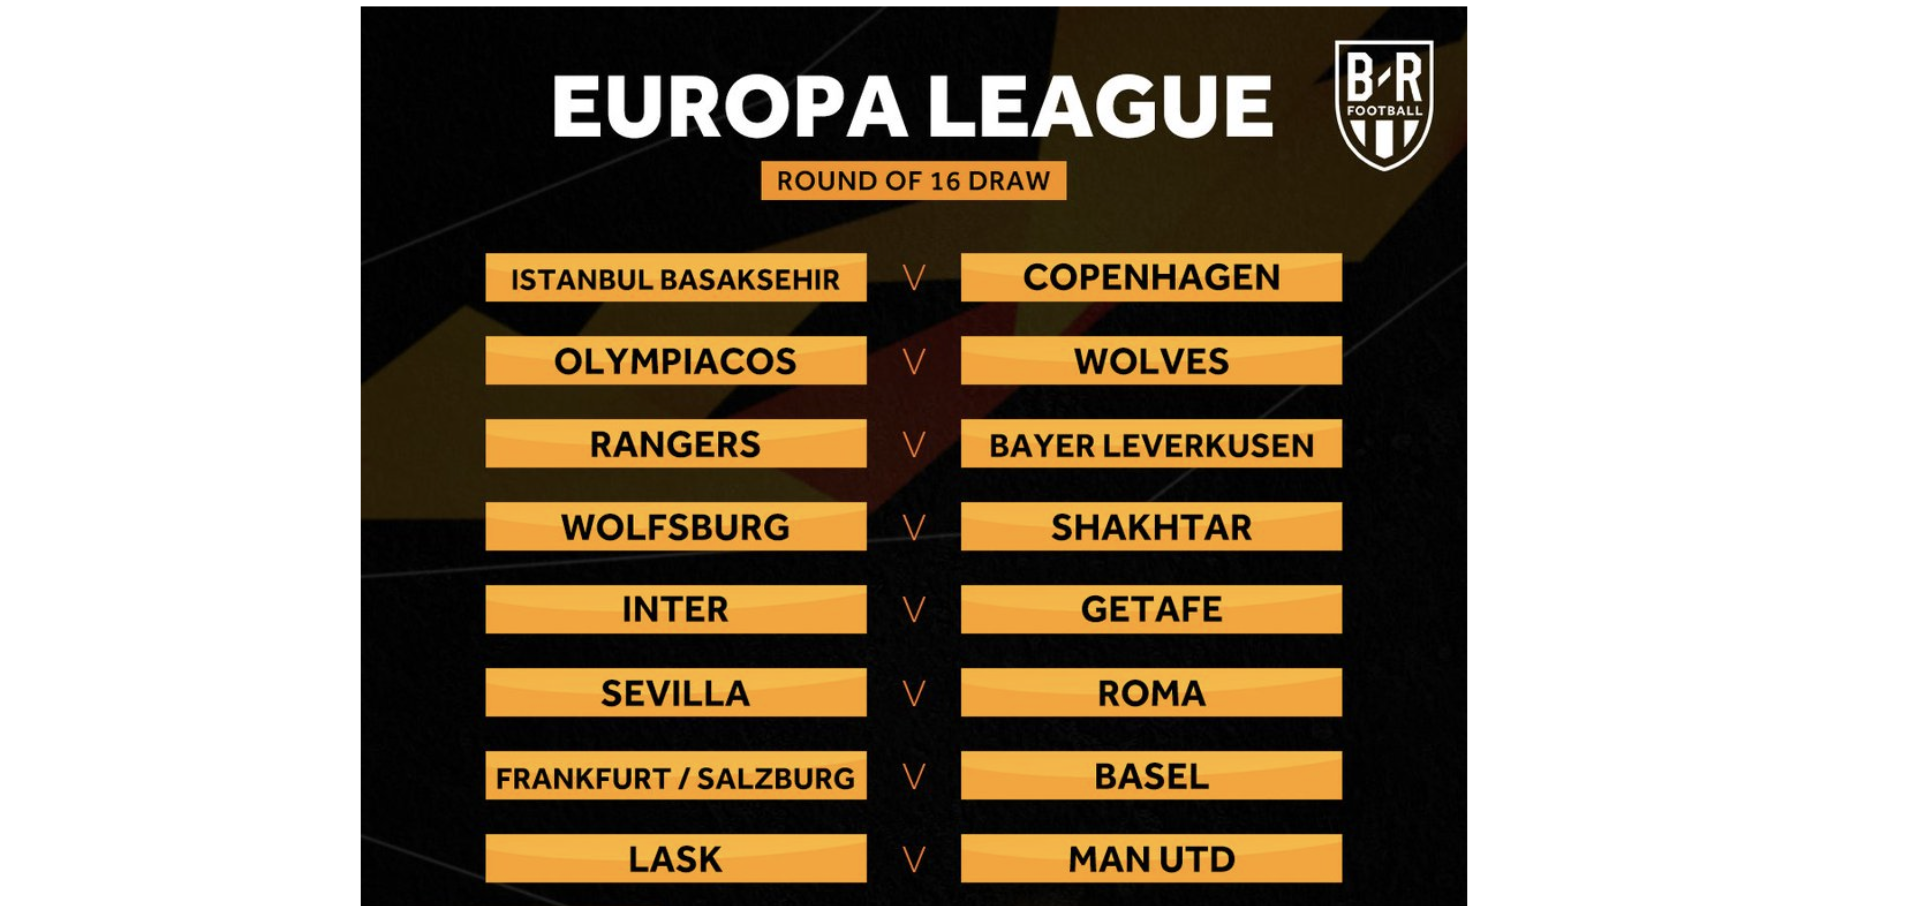 europa league draw 2020 schedule of dates for round of 16 fixtures bleacher report latest news videos and highlights europa league draw 2020 schedule of